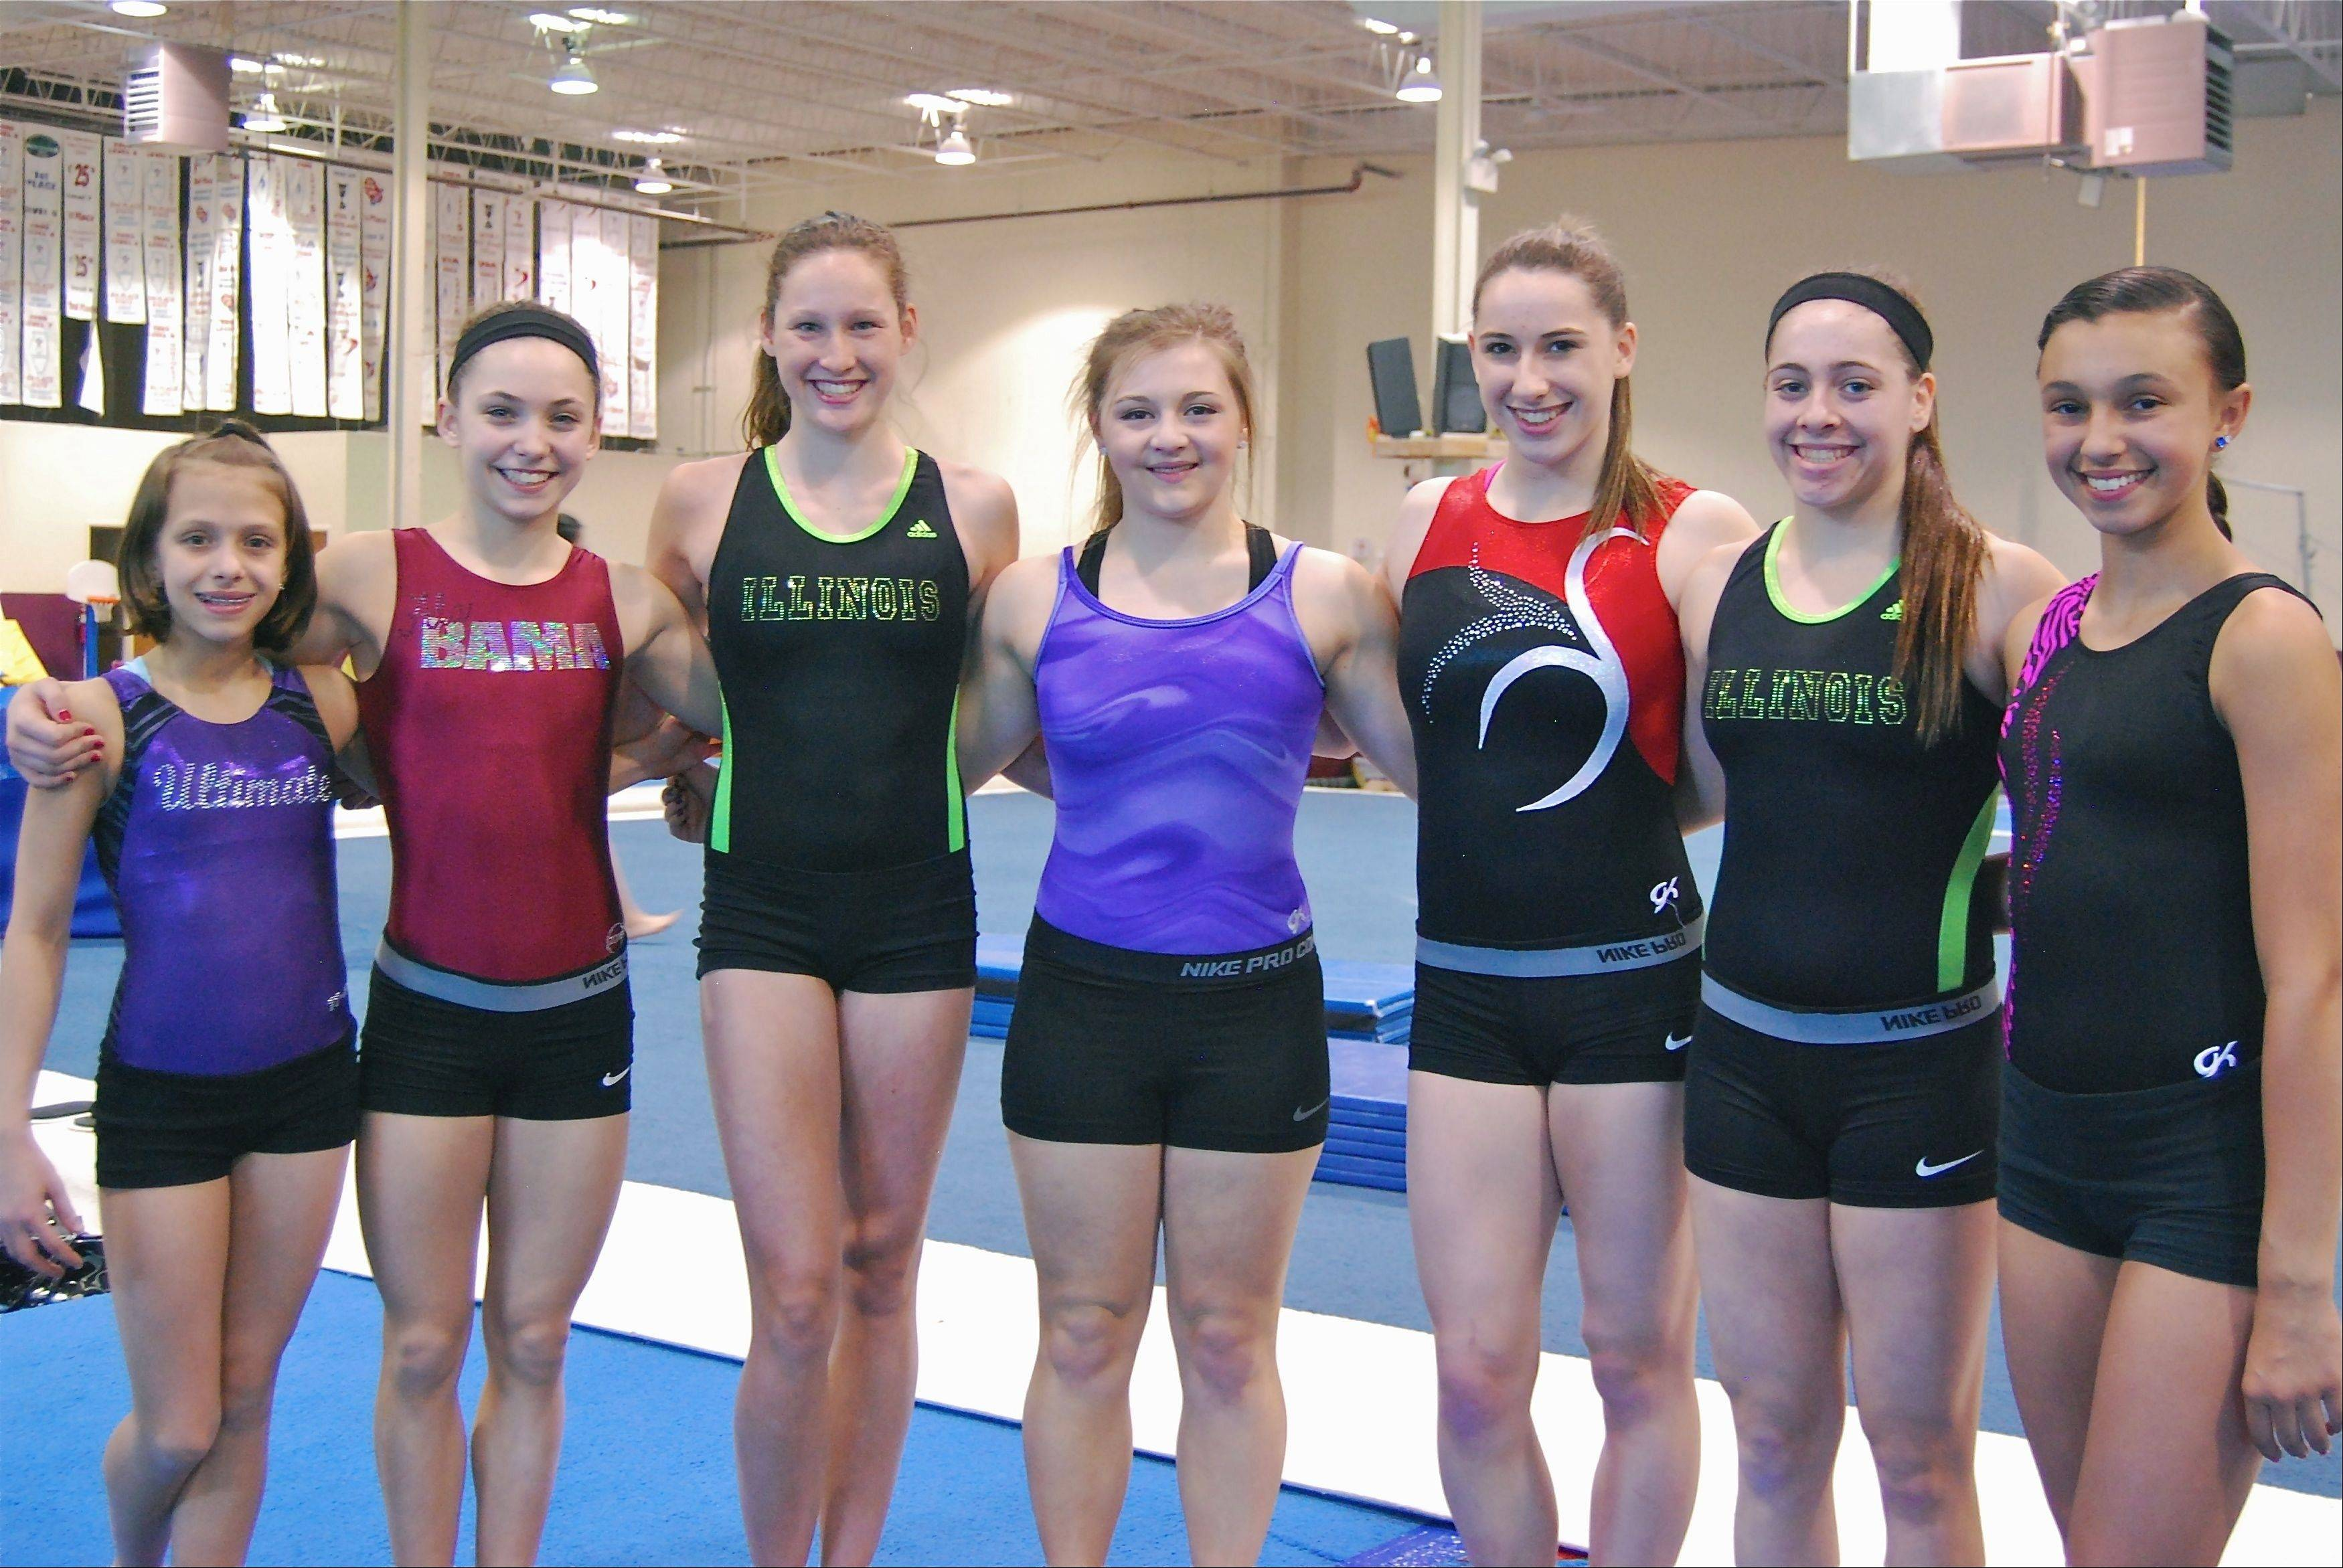 Seven members of the Ultimate Gymnastics Level 8-10 girls' team gathered eight gold medals in their respective age groups at their state meet sessions held in Bourbonnais. From left: Emily Whitis (floor champion, L8), Ella Peter (beam champion, L8), Katie Schroeder (beam and all-around champion, L8), Brittany Moccia (beam champion, L9), Lauren Feely (vault champion, L10), Carli Betman (floor champion, L8) and Samantha Wahlers (floor champion, L8).